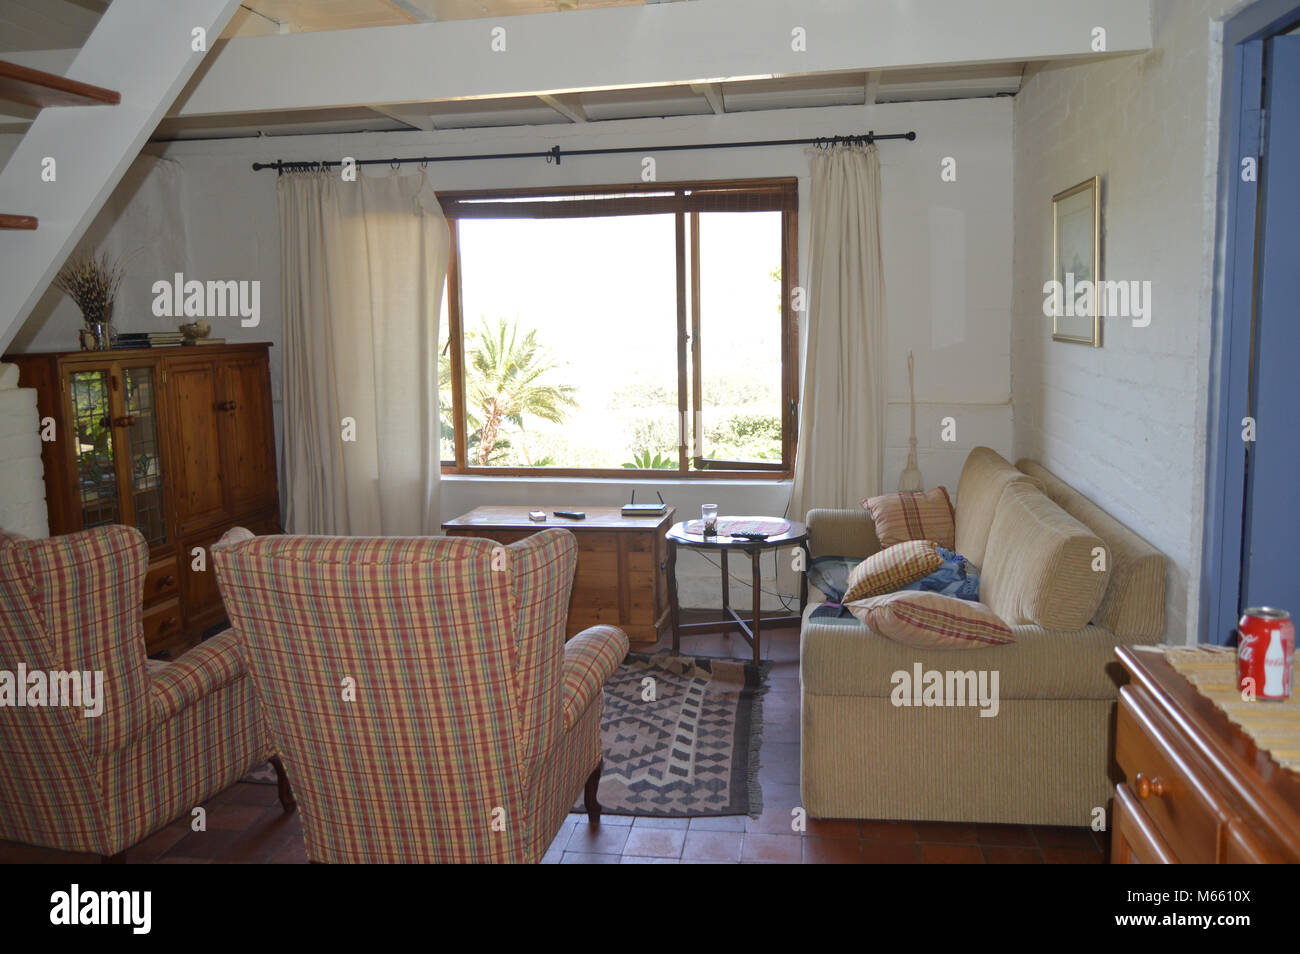 Wolvekrantz accomodation in Hout Bay Cape Town - Stock Image